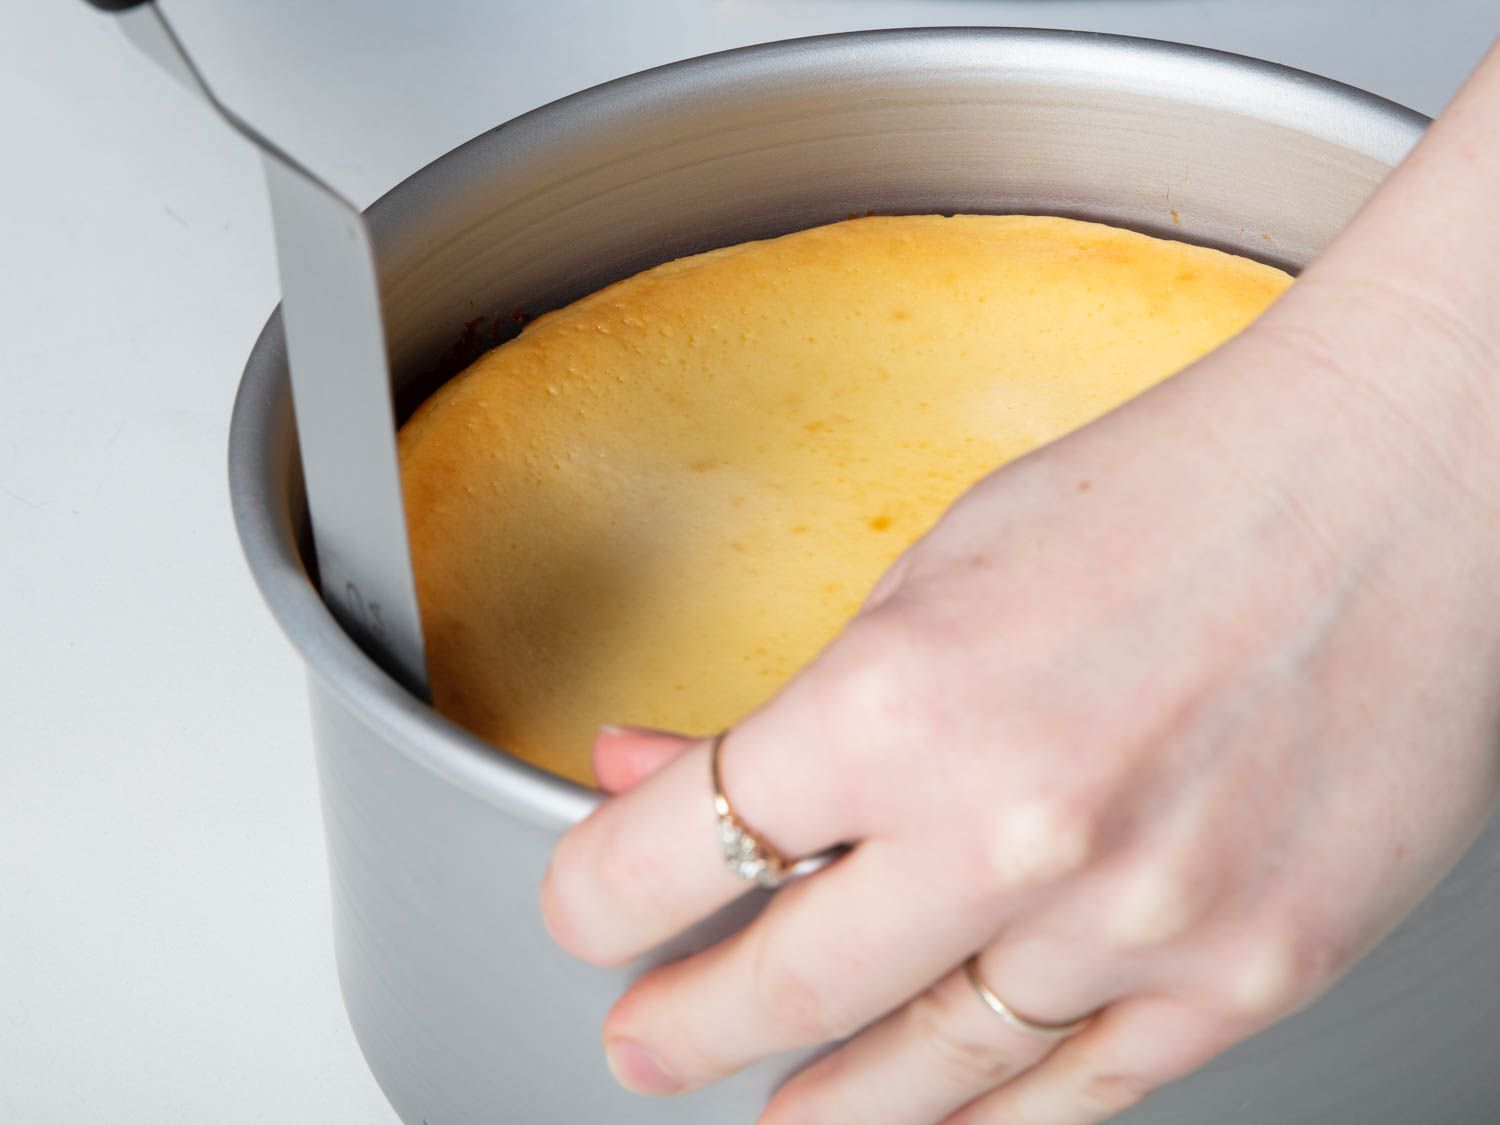 The baked cheesecake being loosened from the pan with a large offset spatula, which is being run along the interior edge of the pan